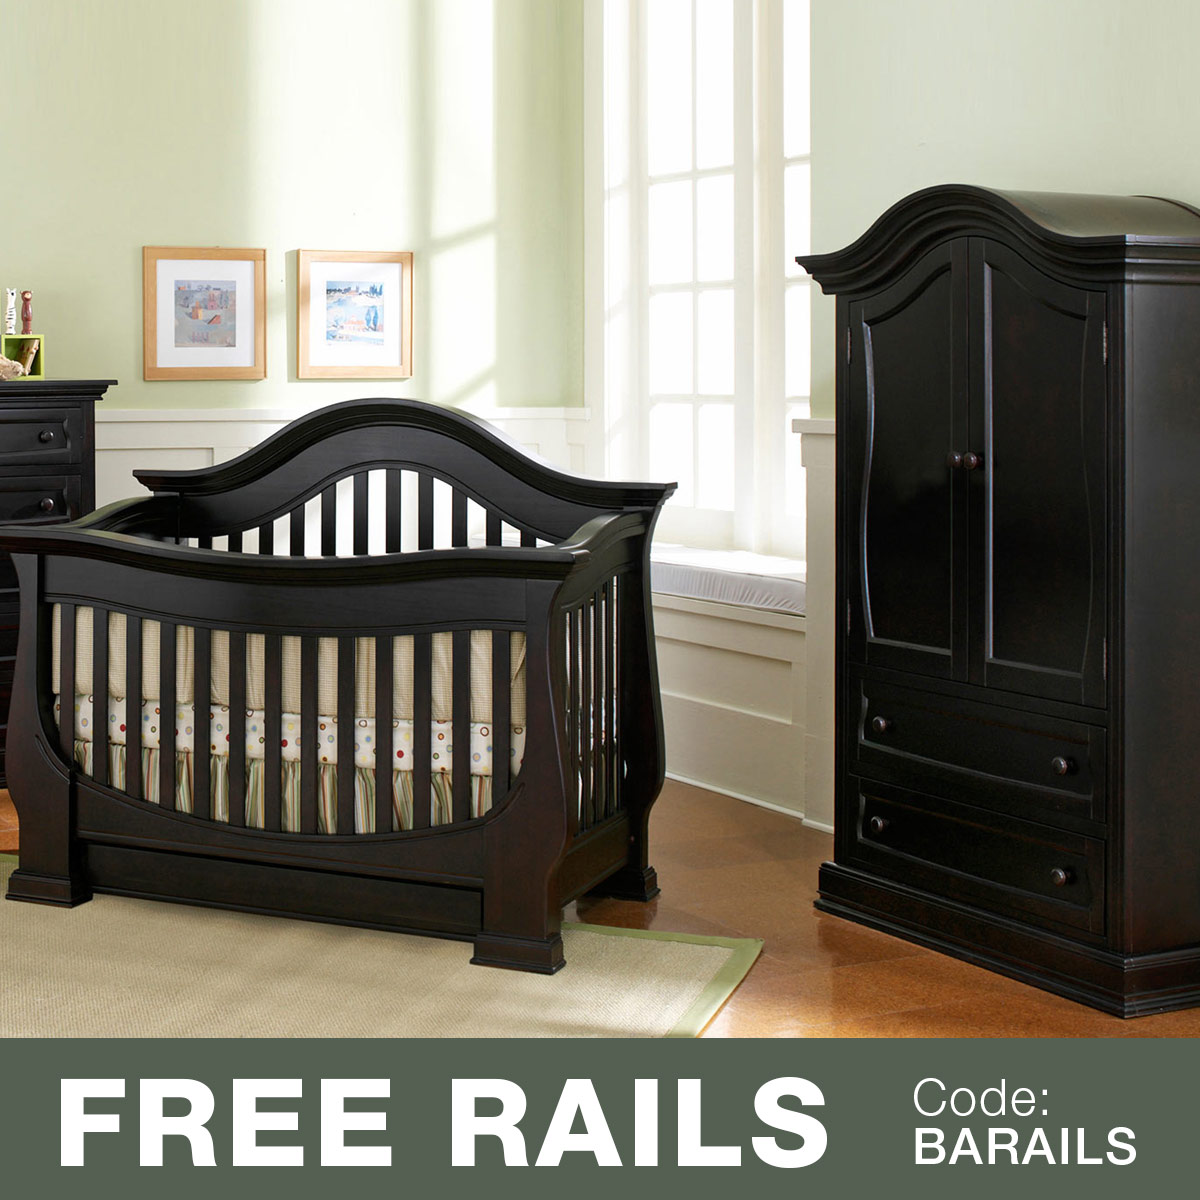 Baby Leseed Davenport 2 Piece Nursery Set Convertible Crib And Armoire In Espresso Free Shipping